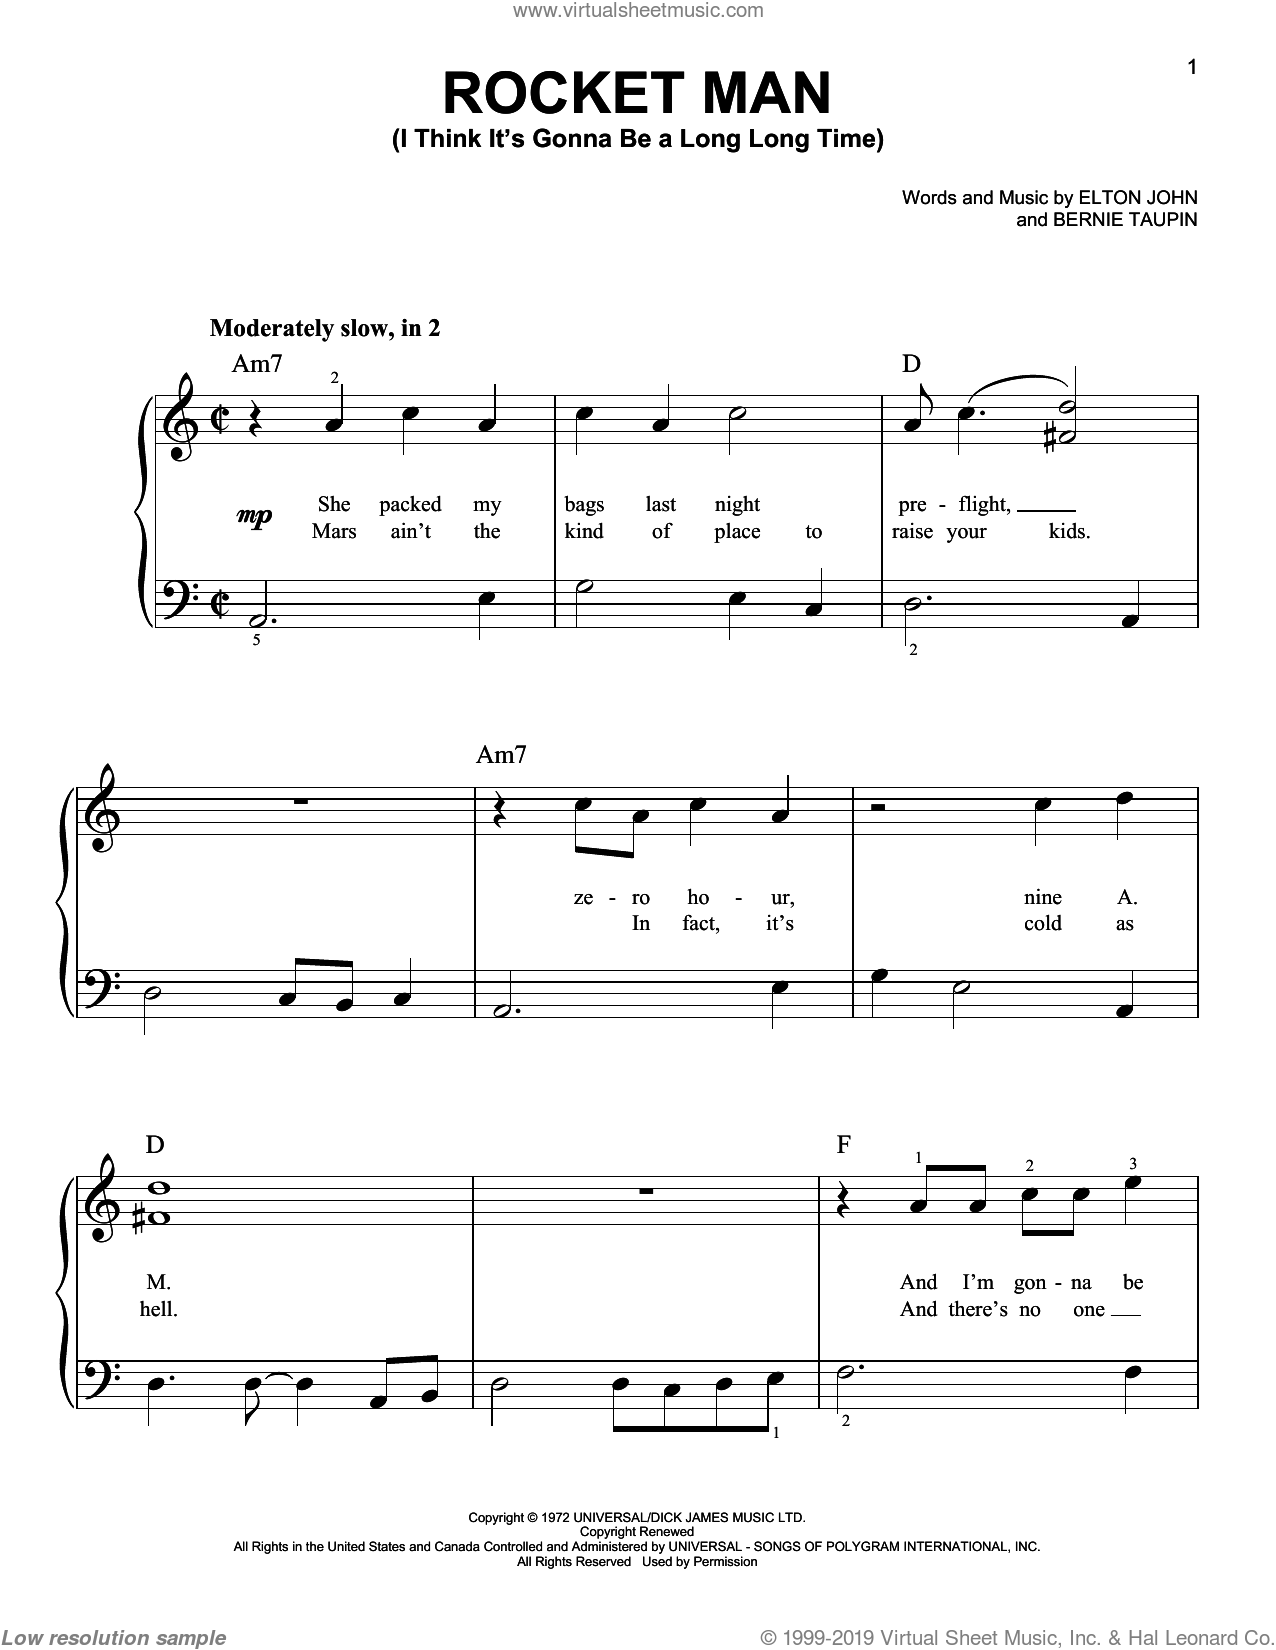 Rocket Man (I Think It's Gonna Be A Long Long Time) sheet music for piano solo (chords) by Bernie Taupin